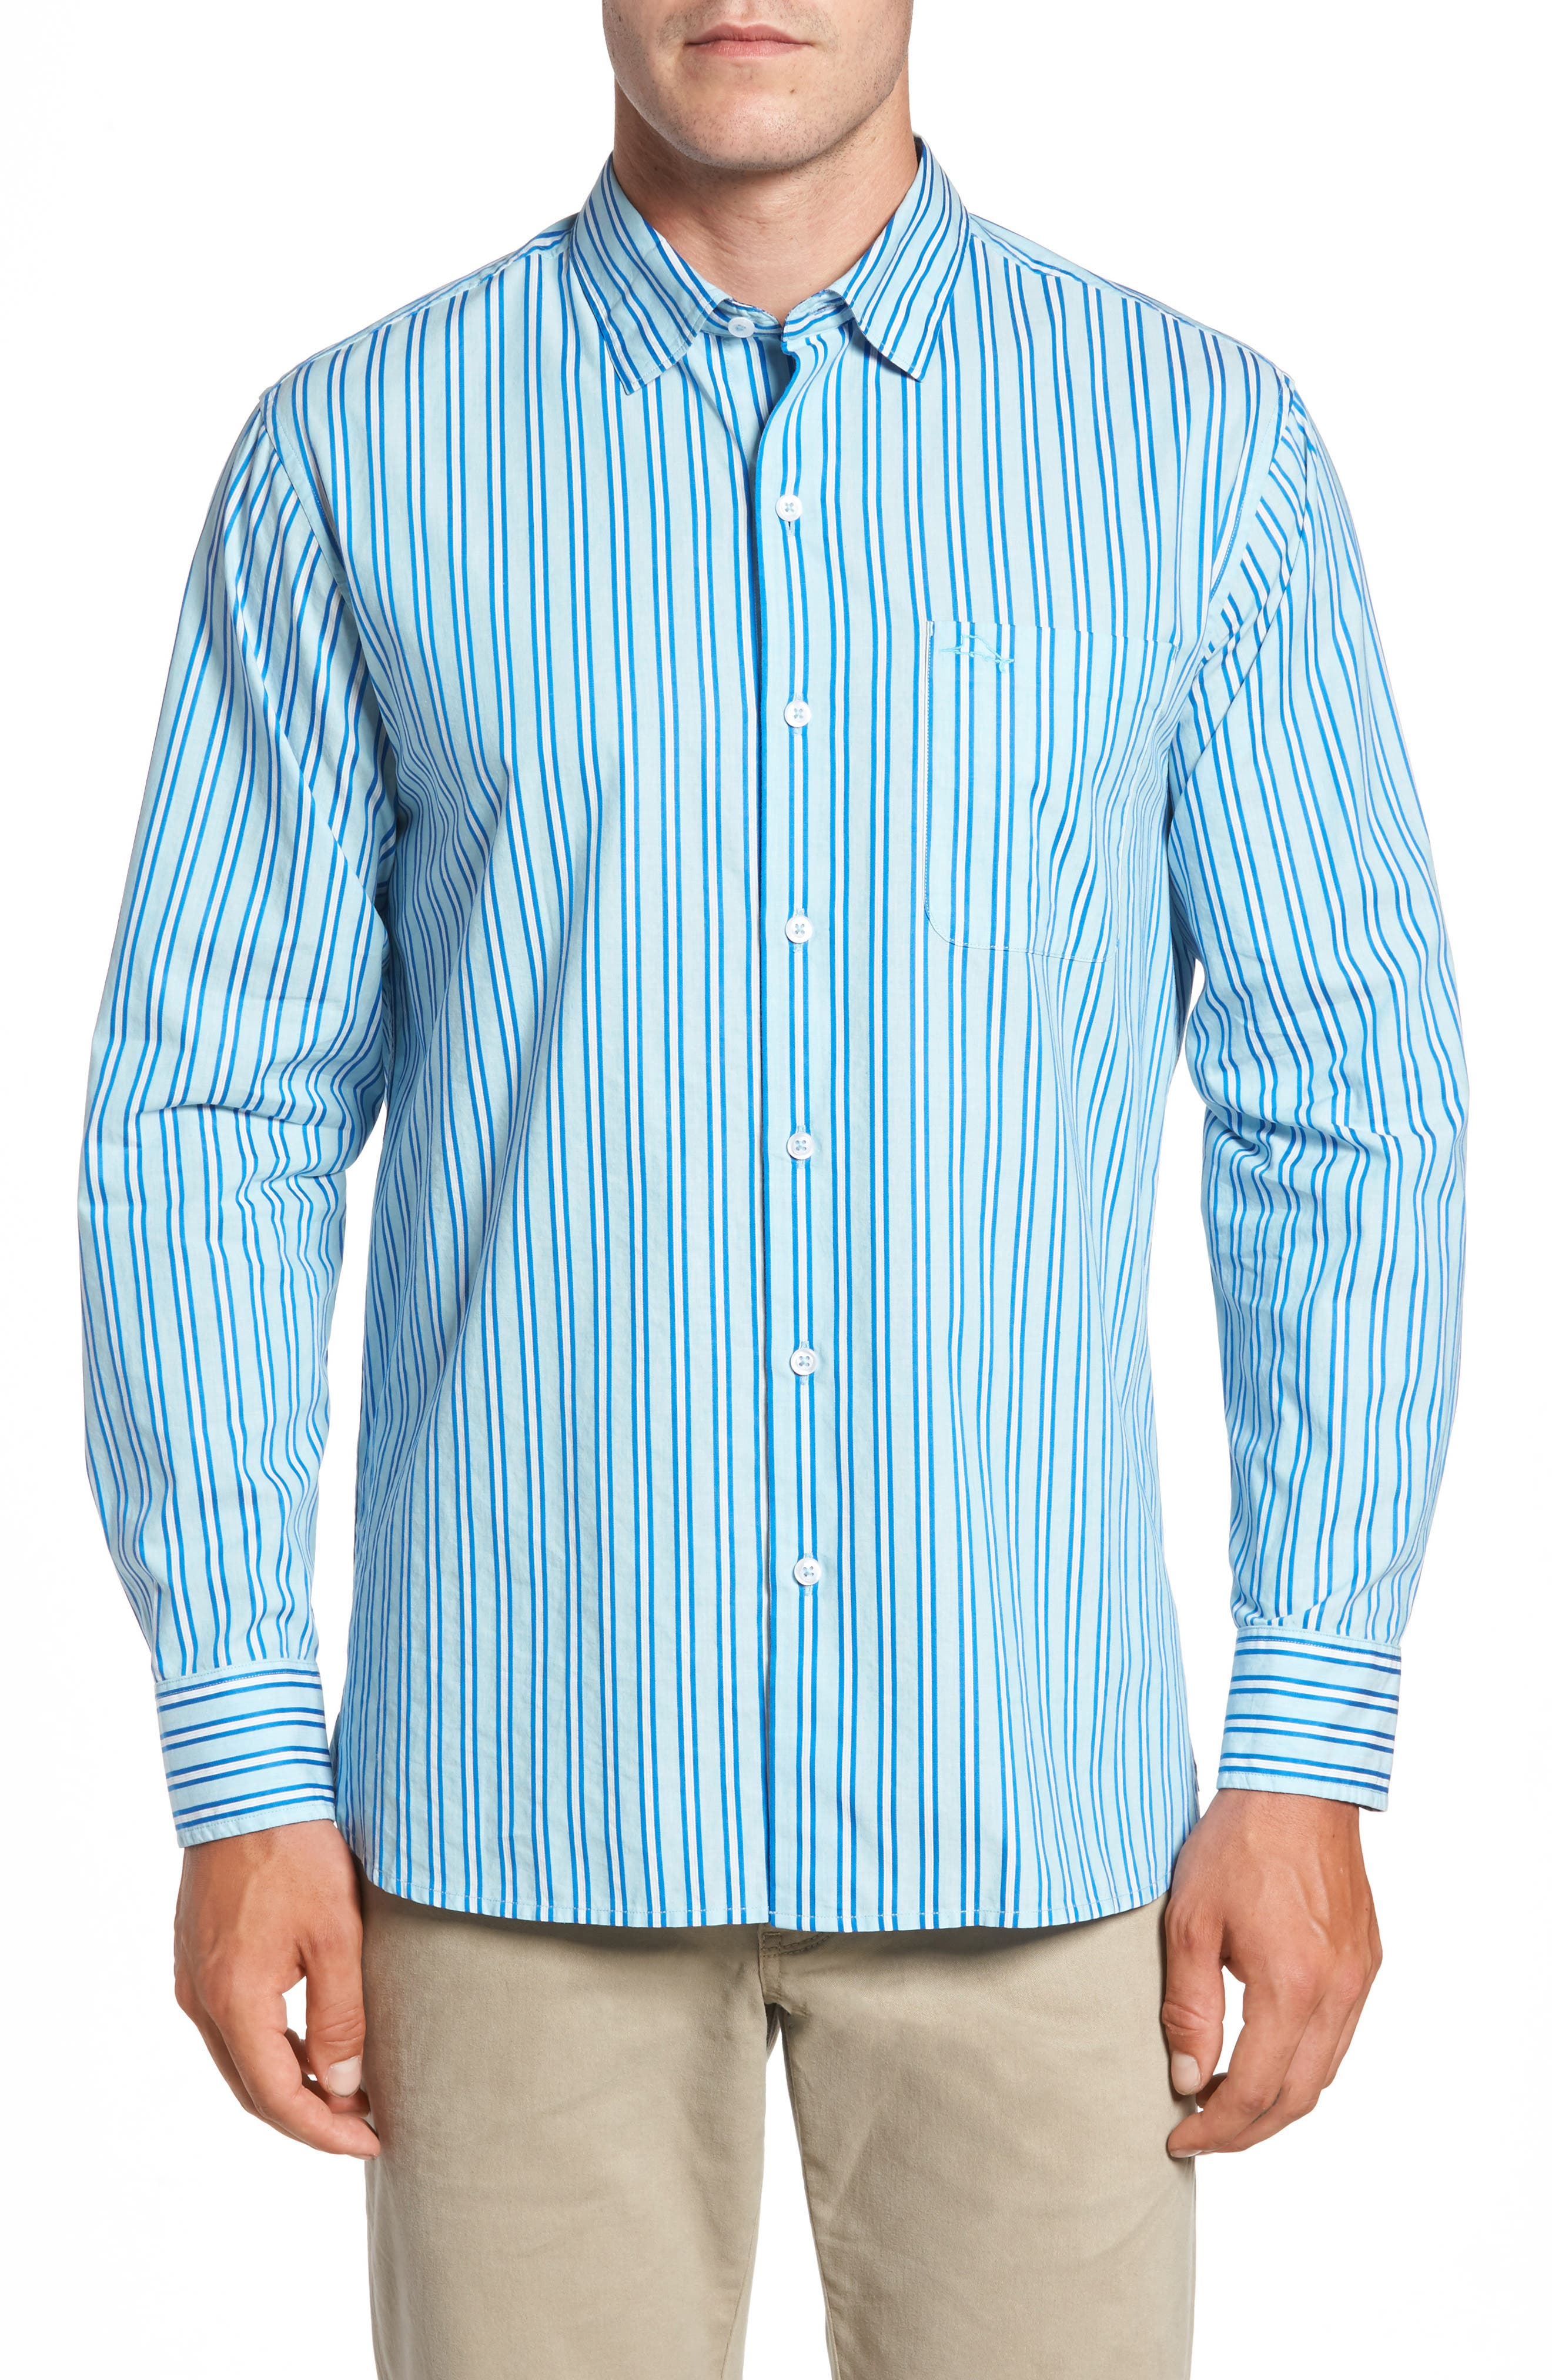 Alternate Image 1 Selected - Tommy Bahama Surf the Line Stripe Sport Shirt